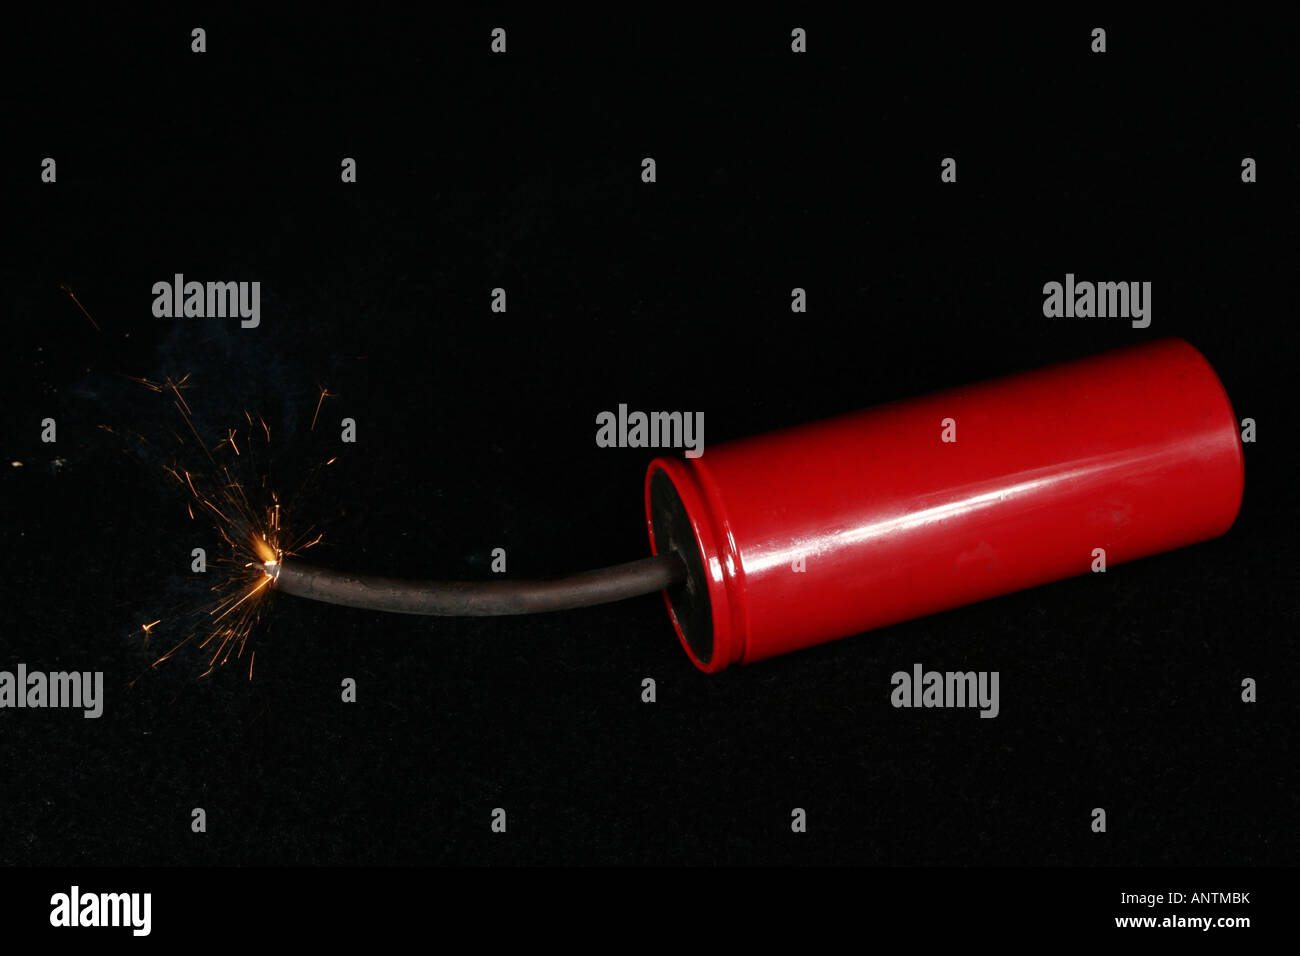 explosive charge - Stock Image